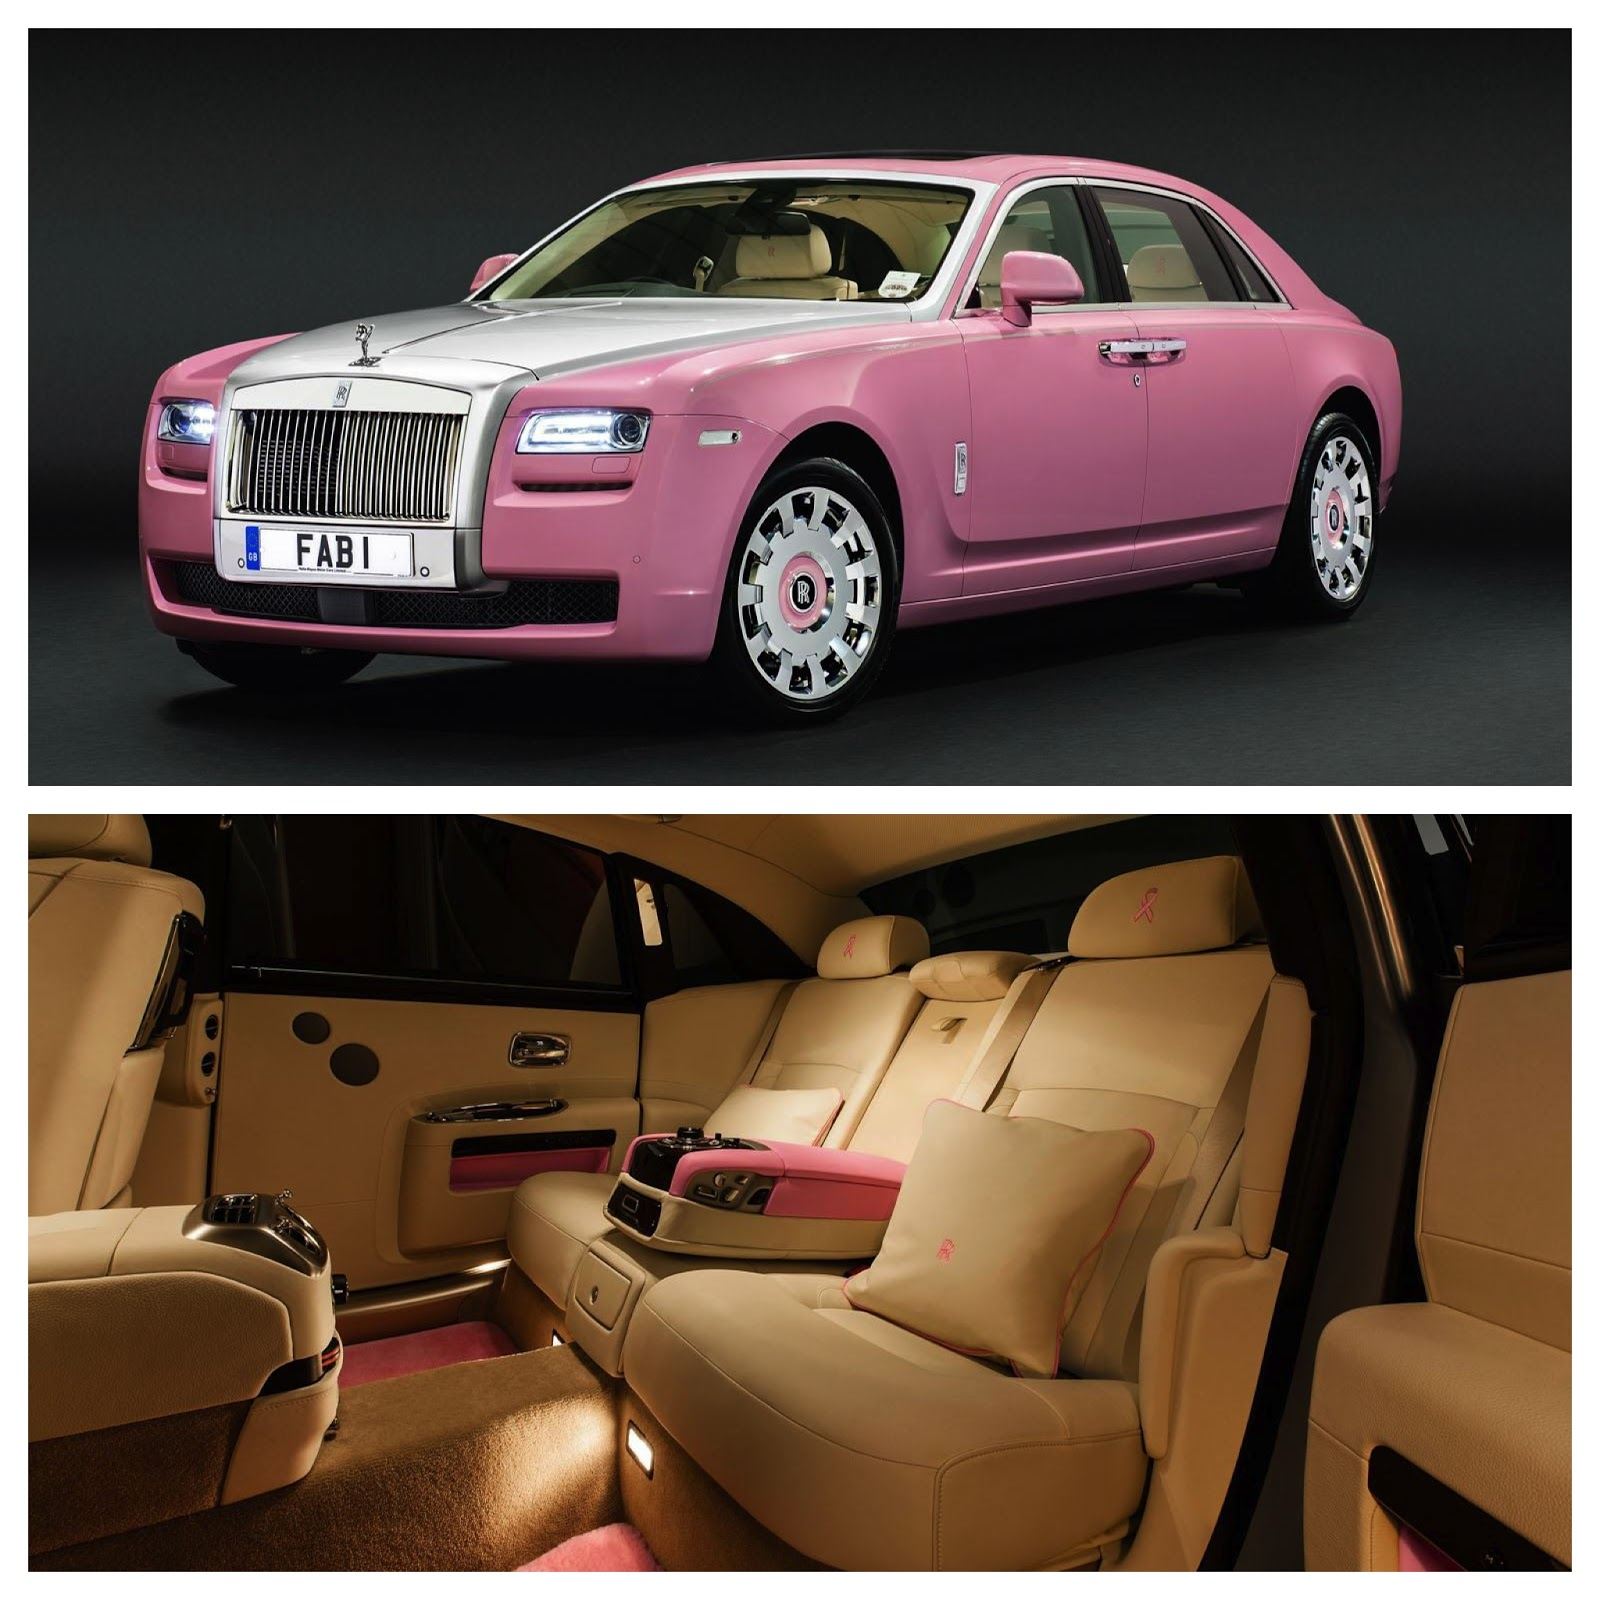 Pink Rolls Royce Ghost for FAB1 Million Project